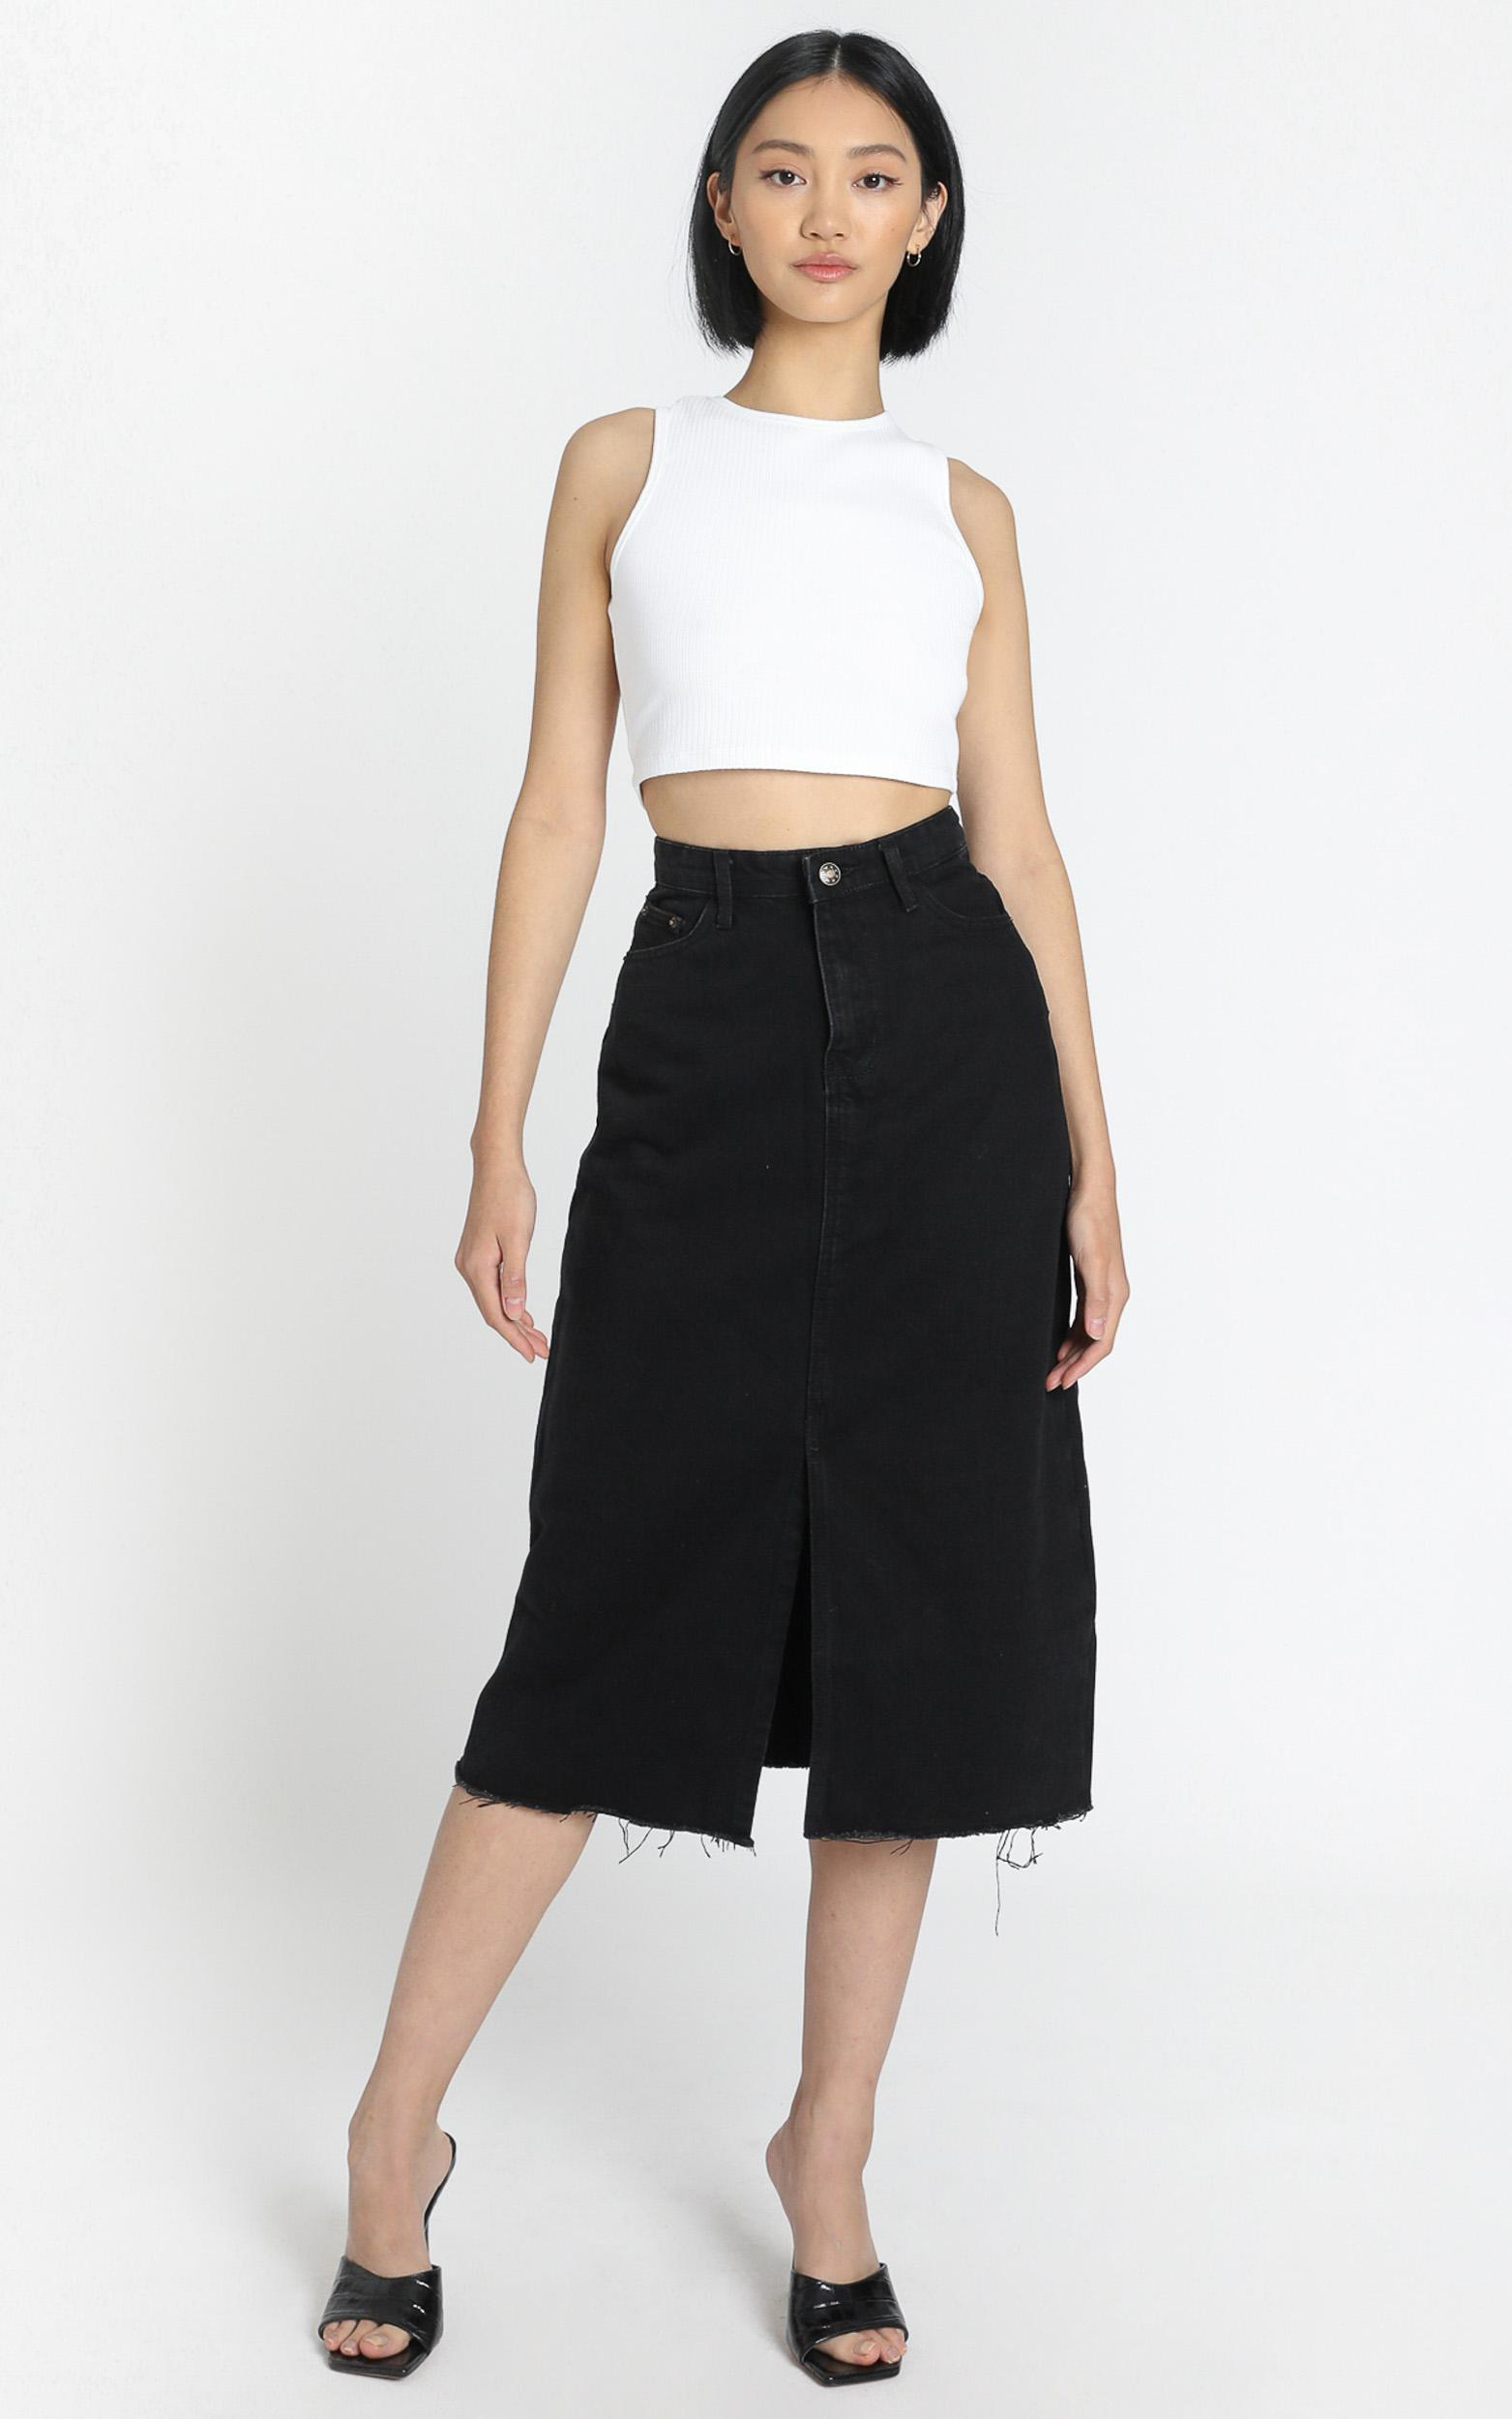 Lioness - Cant Be Tamed Midi Skirt in Black - 6 (XS), Black, hi-res image number null